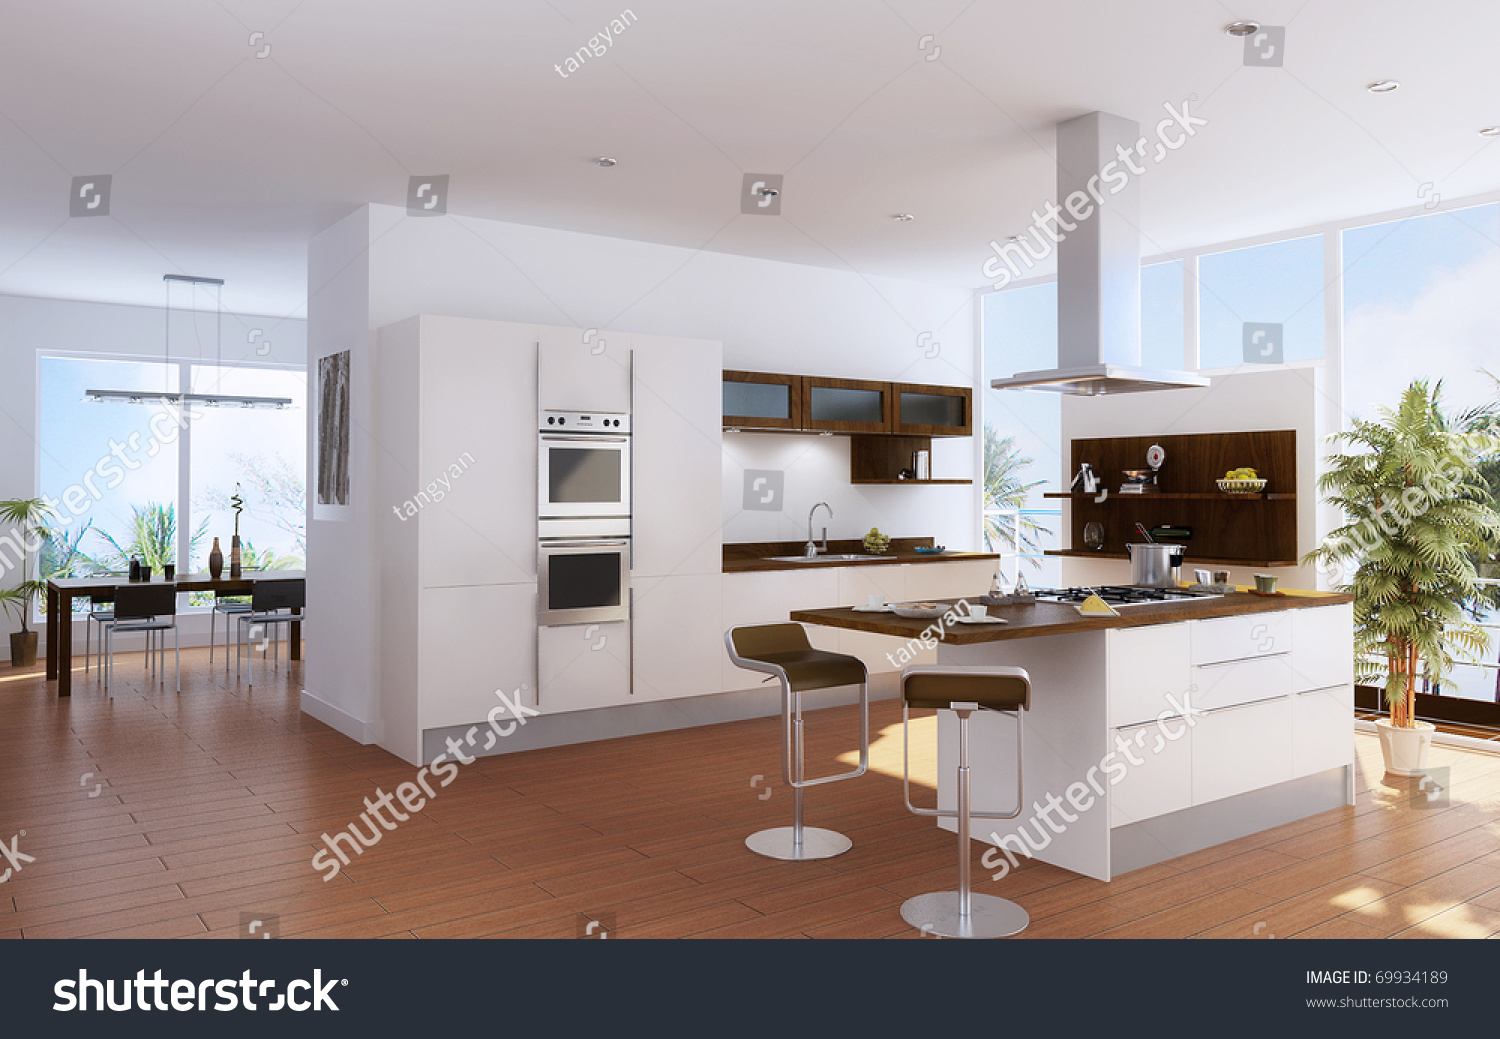 Modern Kitchen Interior Design Stock Illustration 69934189 Shutterstock